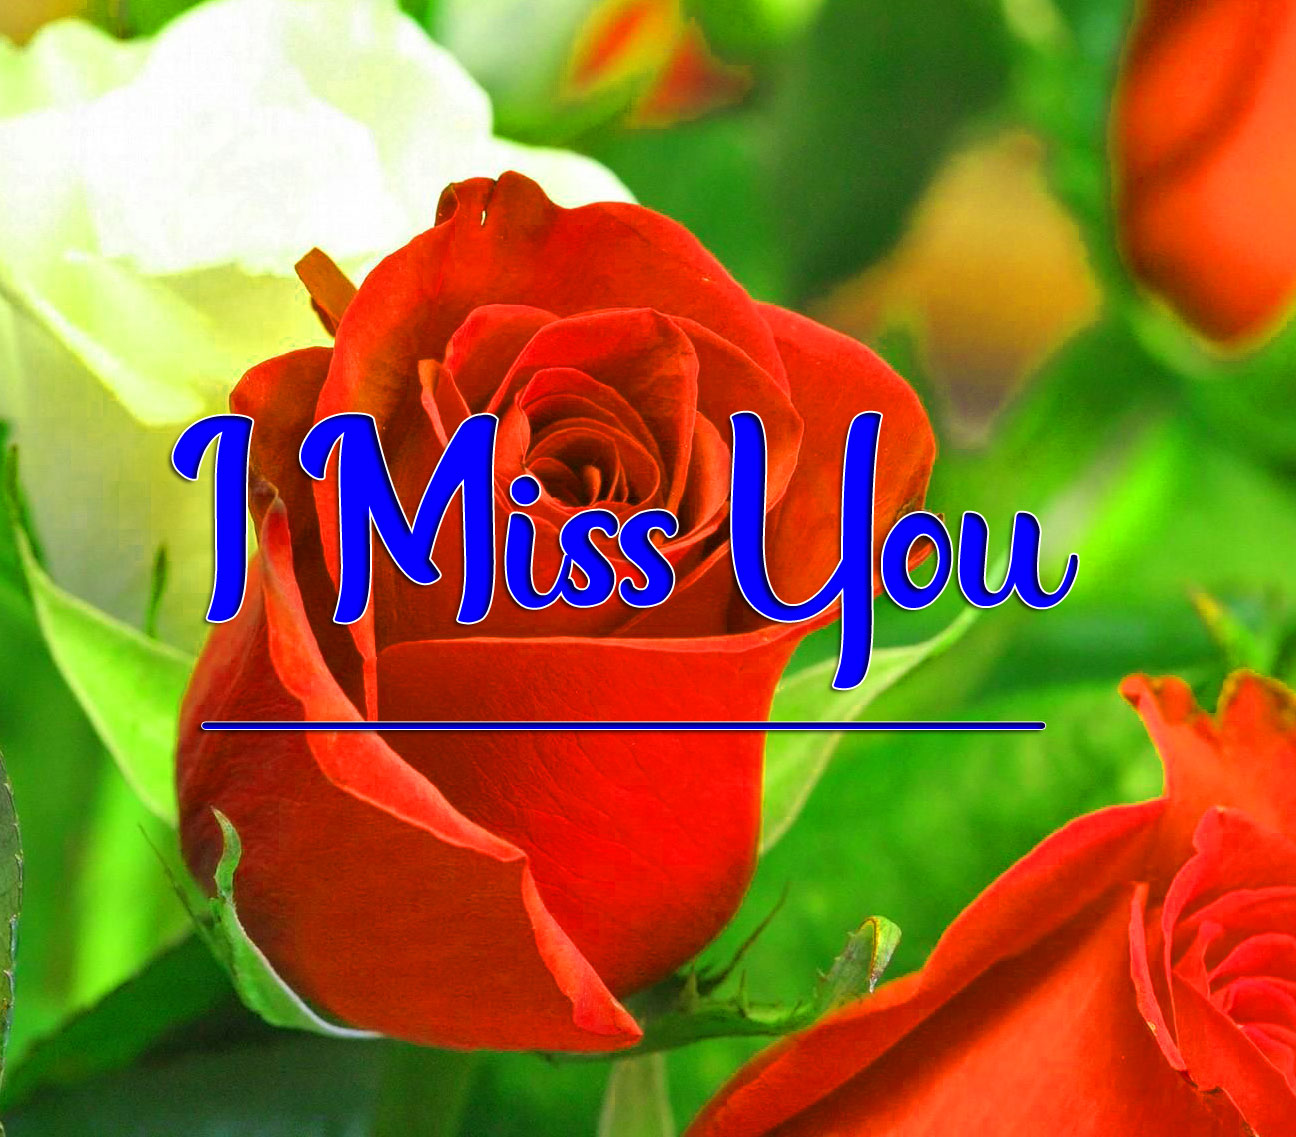 Red Rose HD I miss you Images